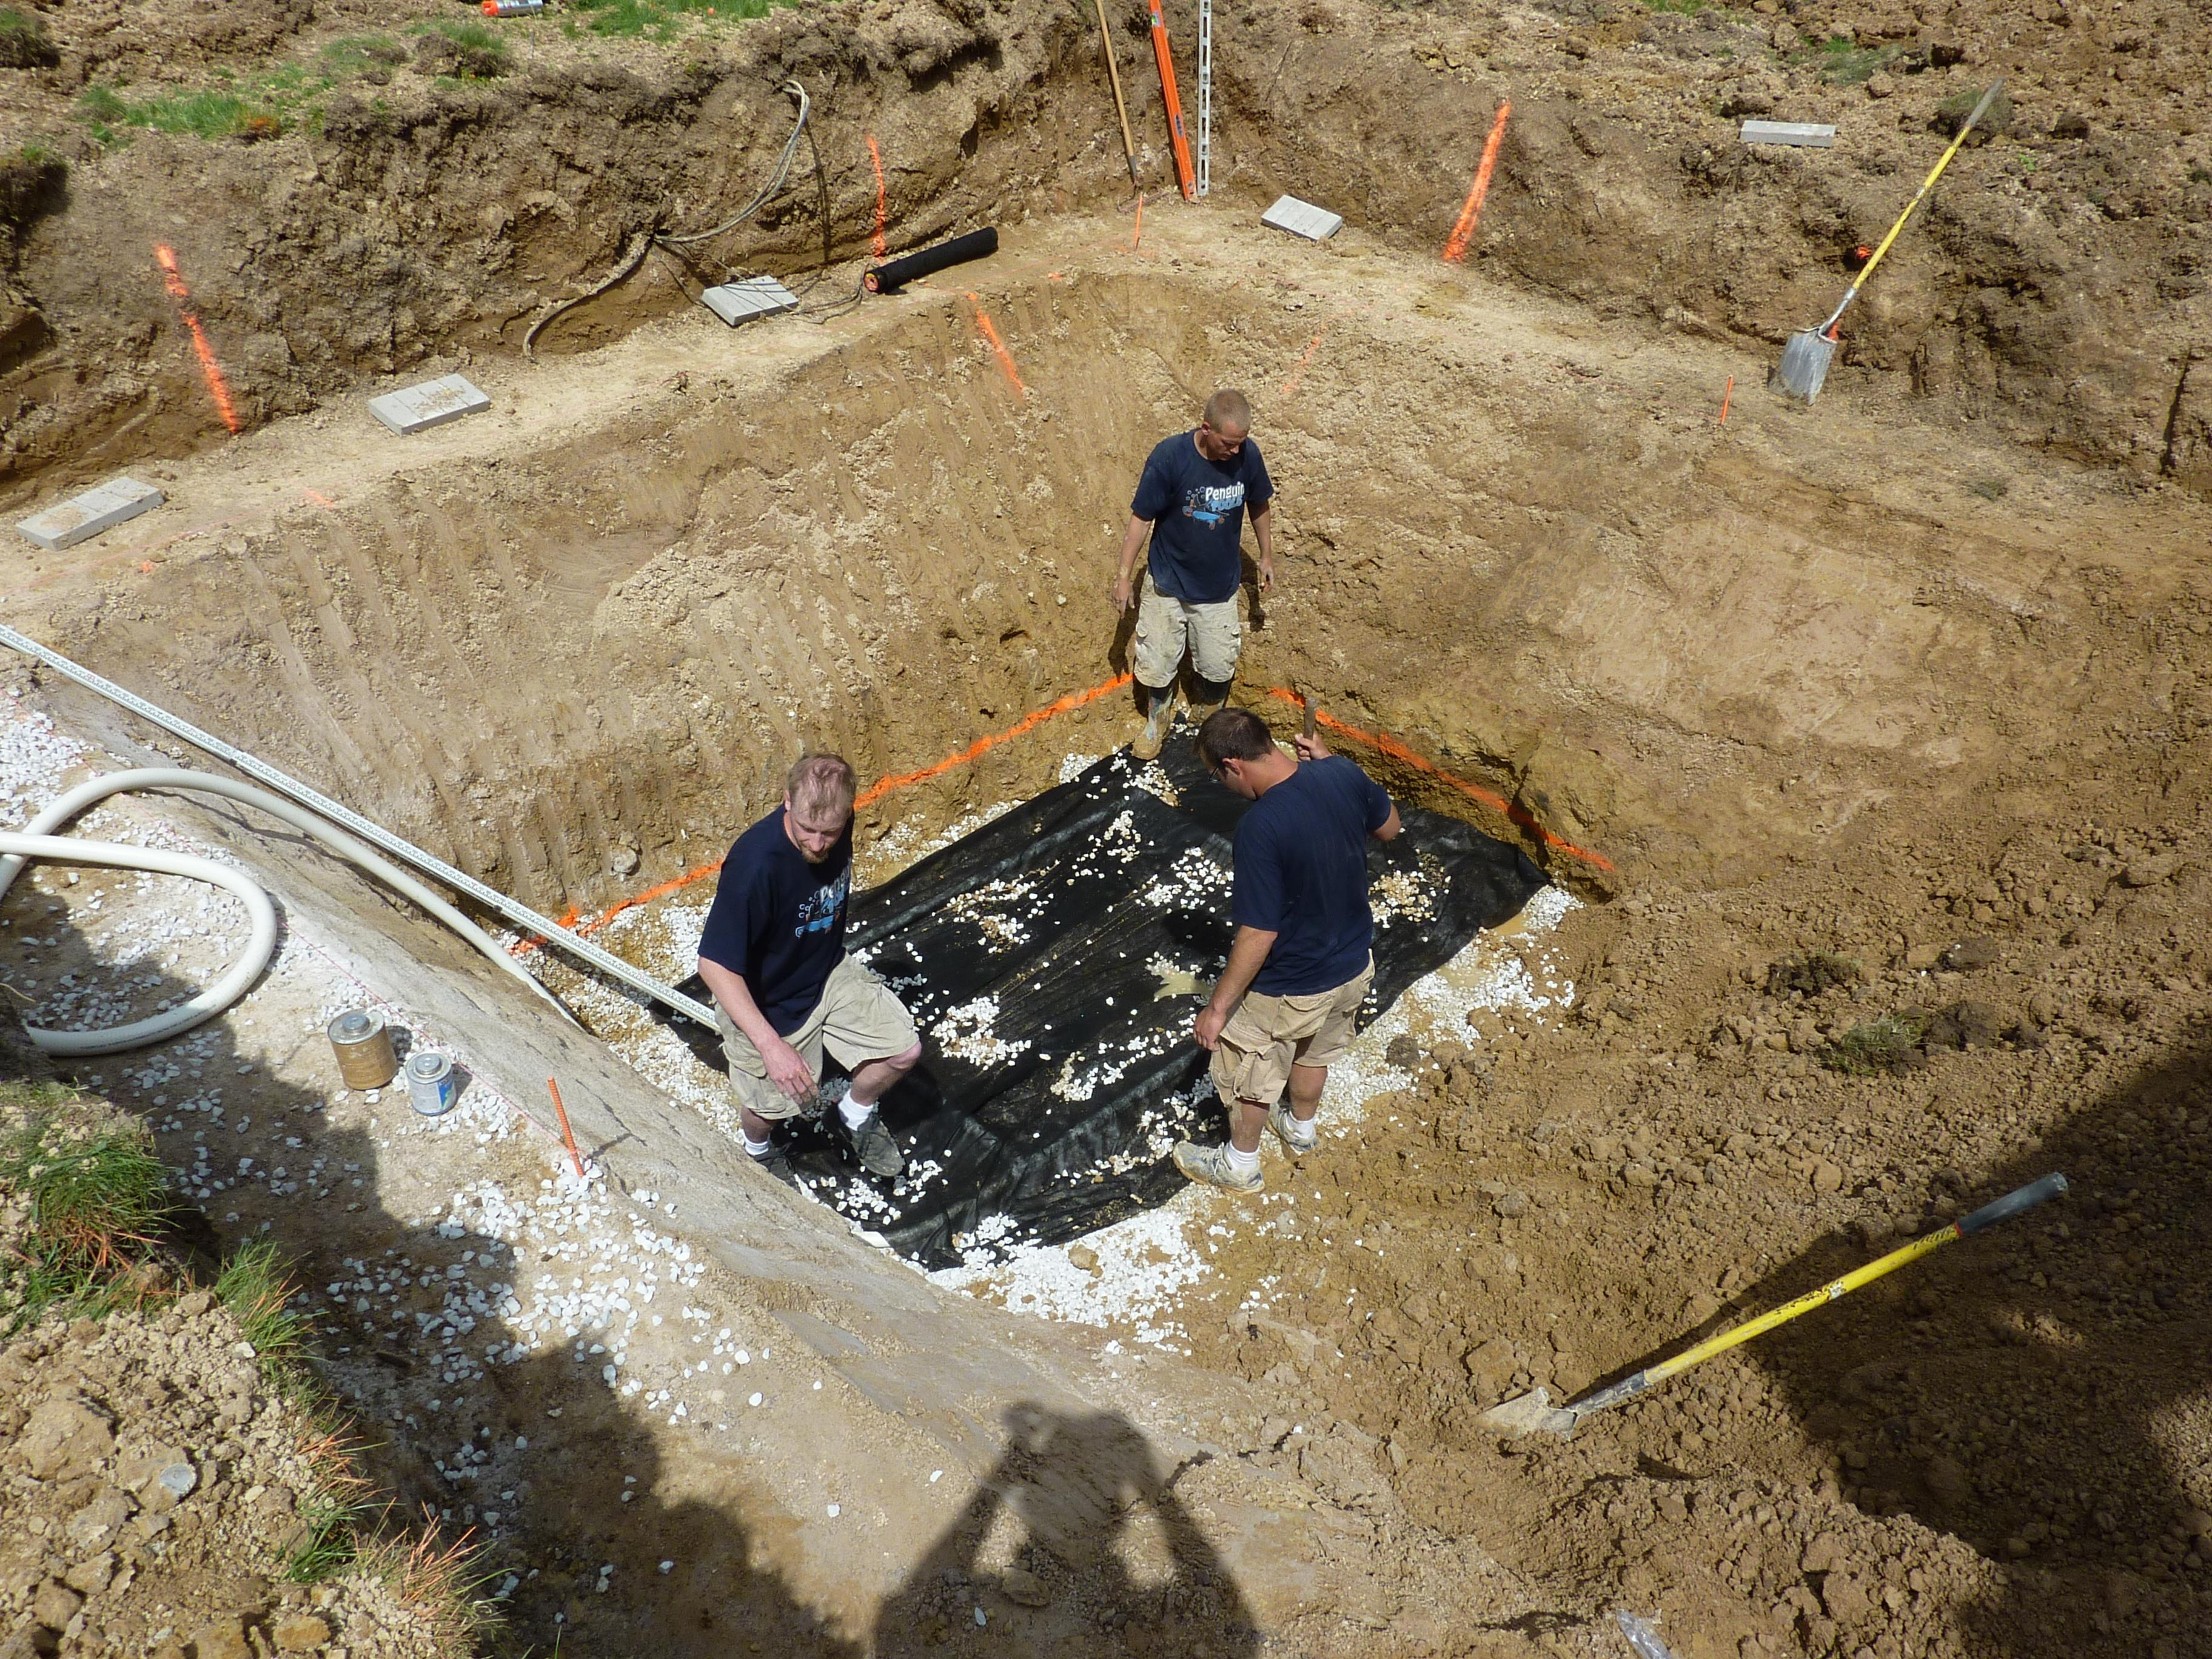 Clay Soils Cause Floating Vinyl Liners Milwaukee